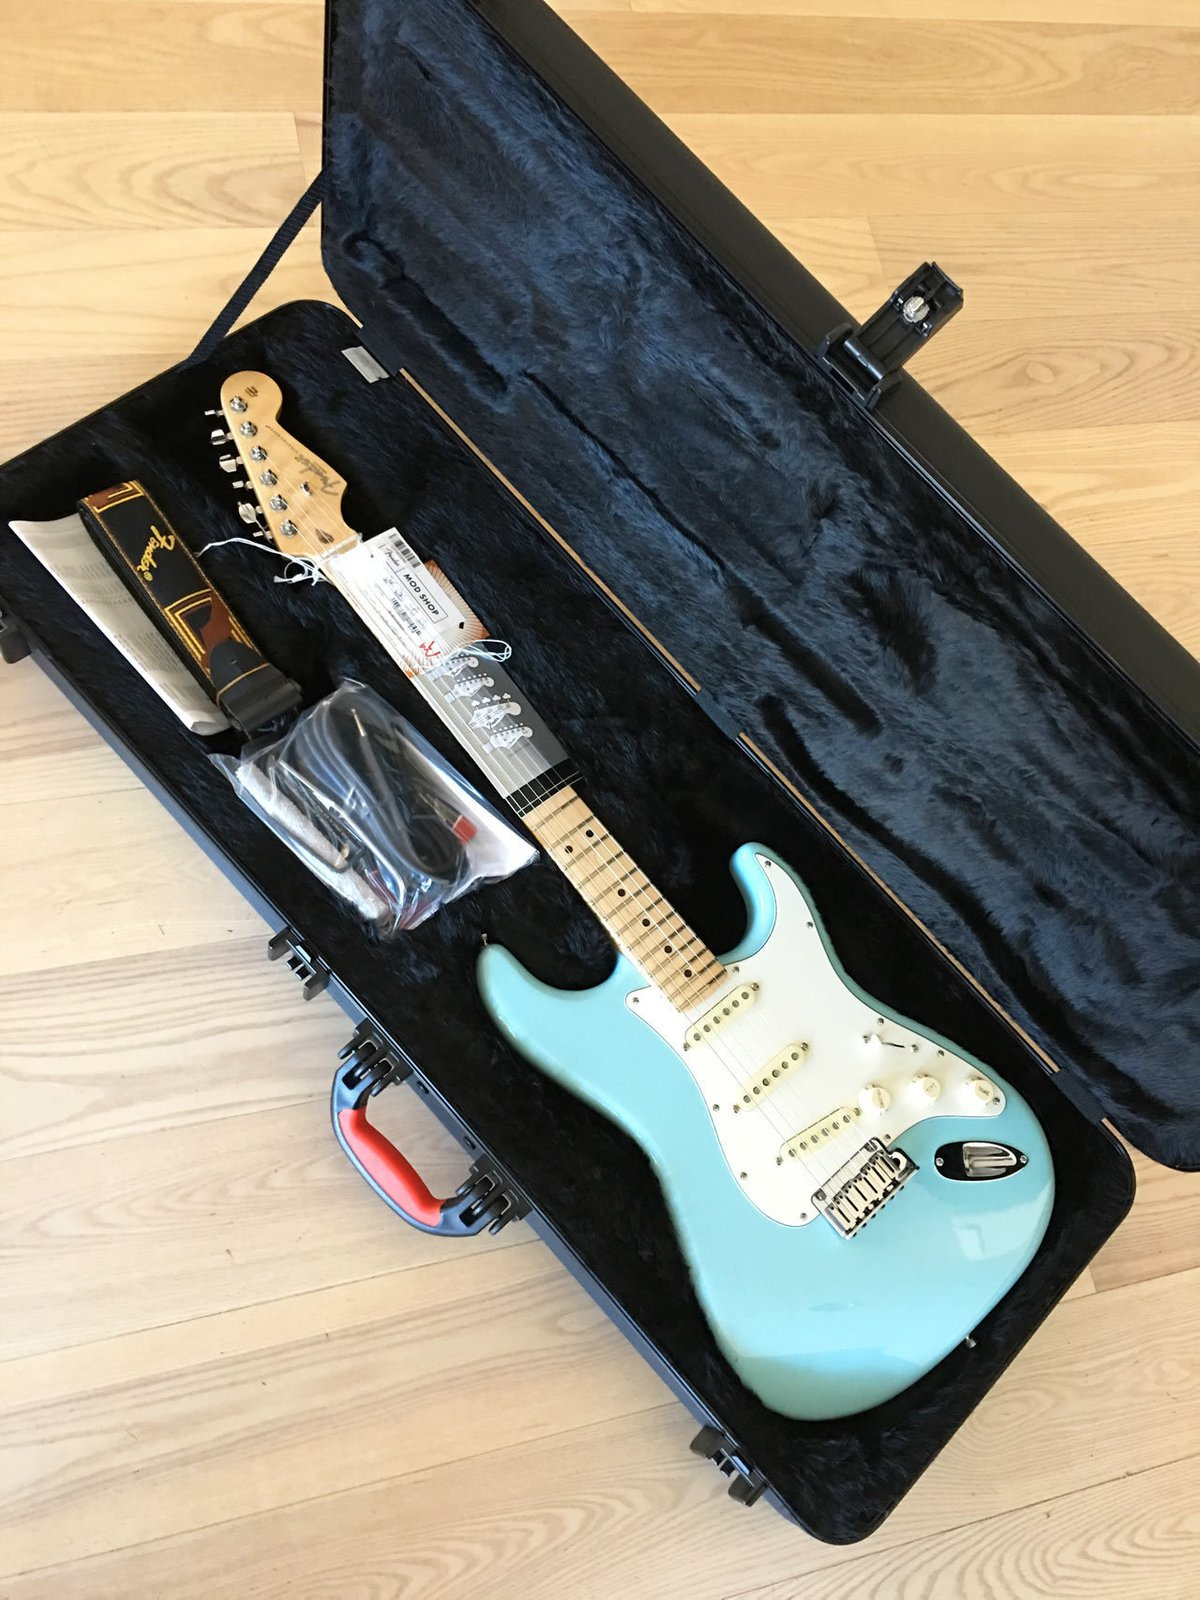 Photo 18 of 19 in Fender's Mod Shop Lets You Build Your Own Modern Classic